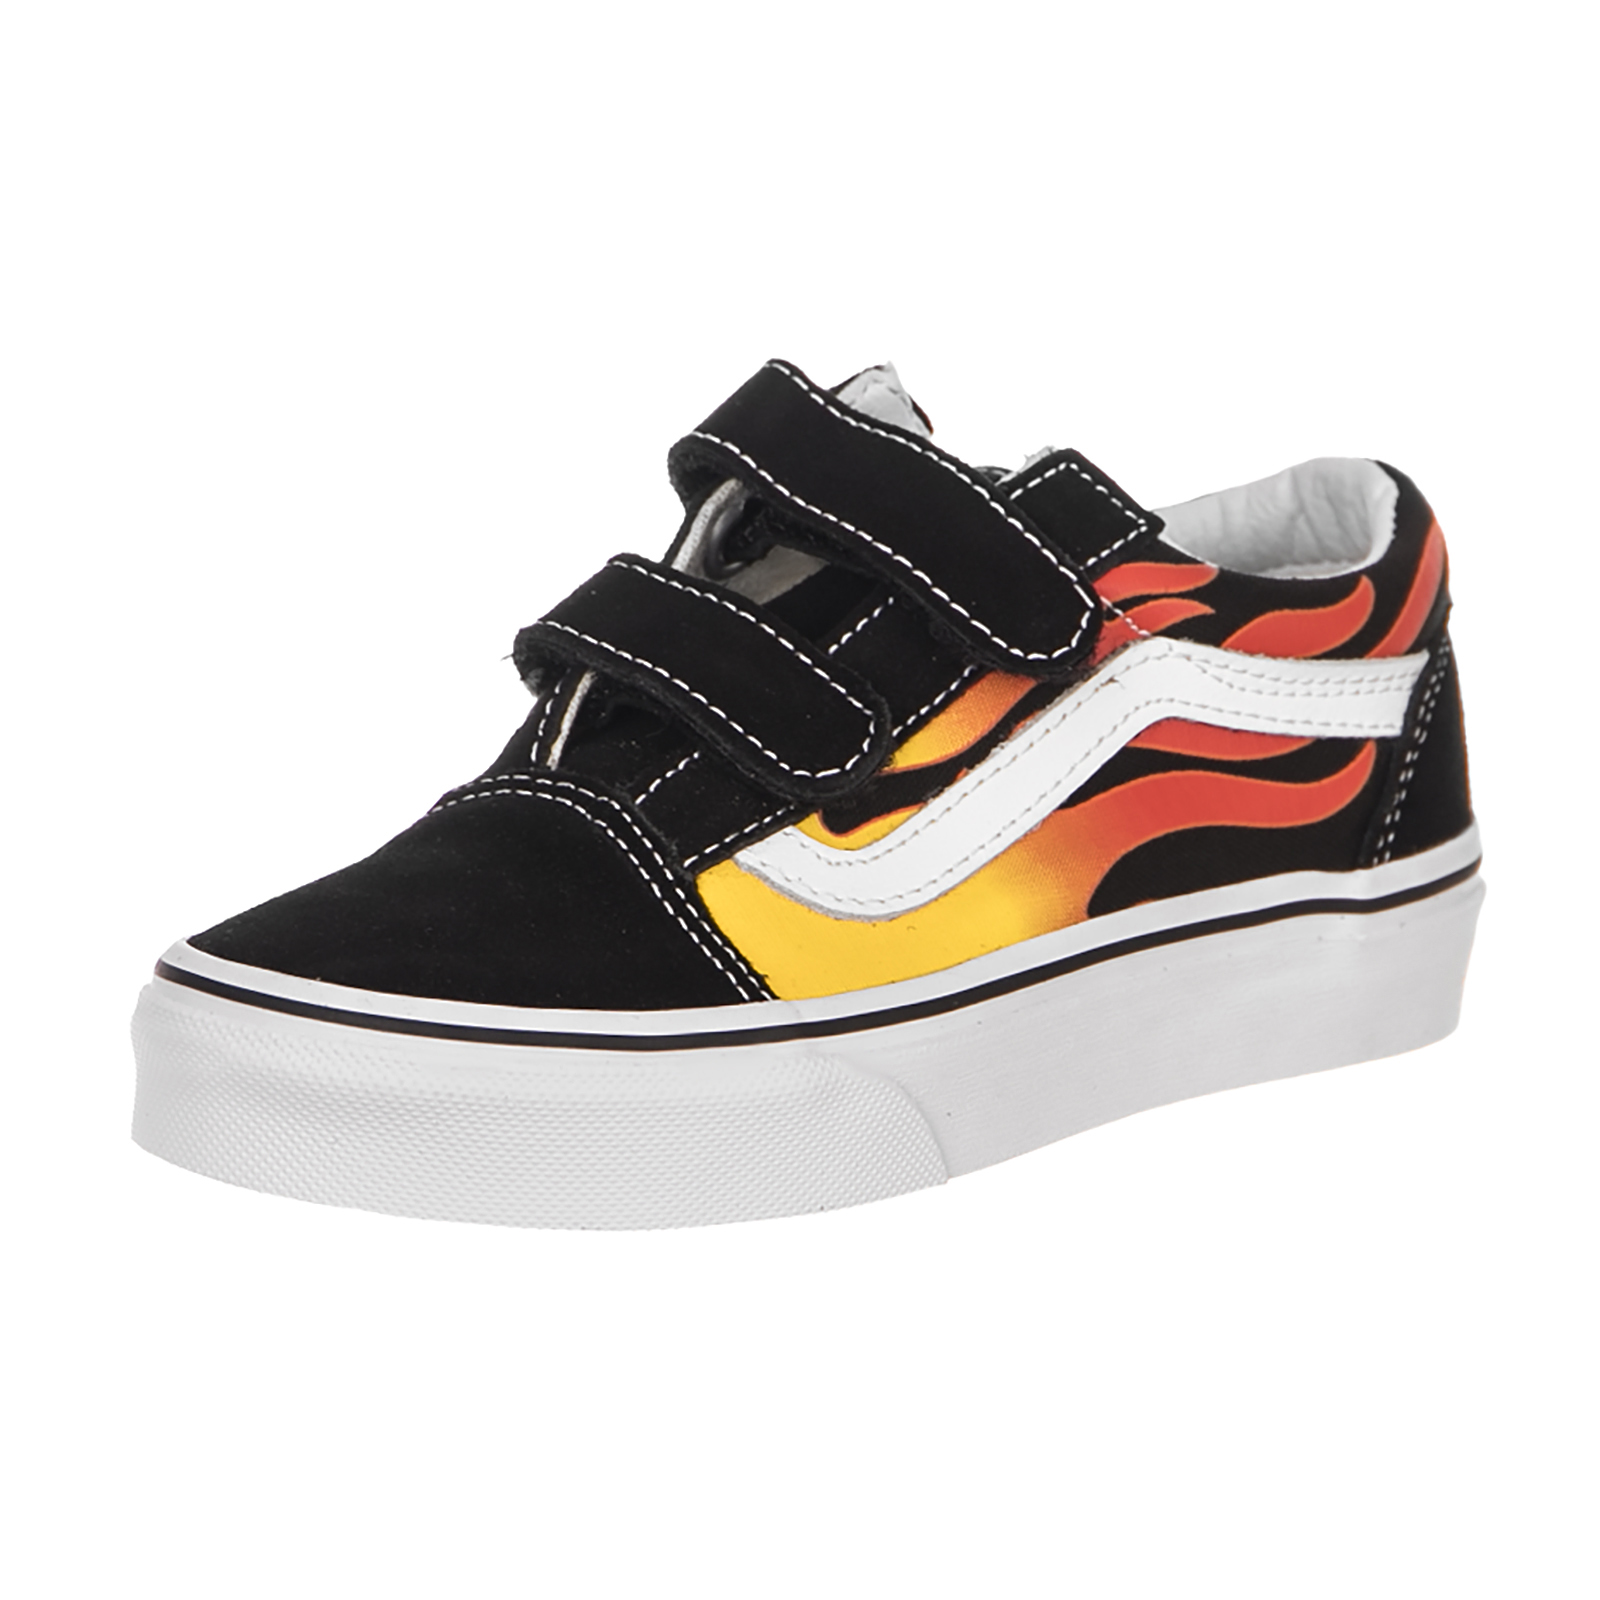 Vans Old Skool V kids sneaker